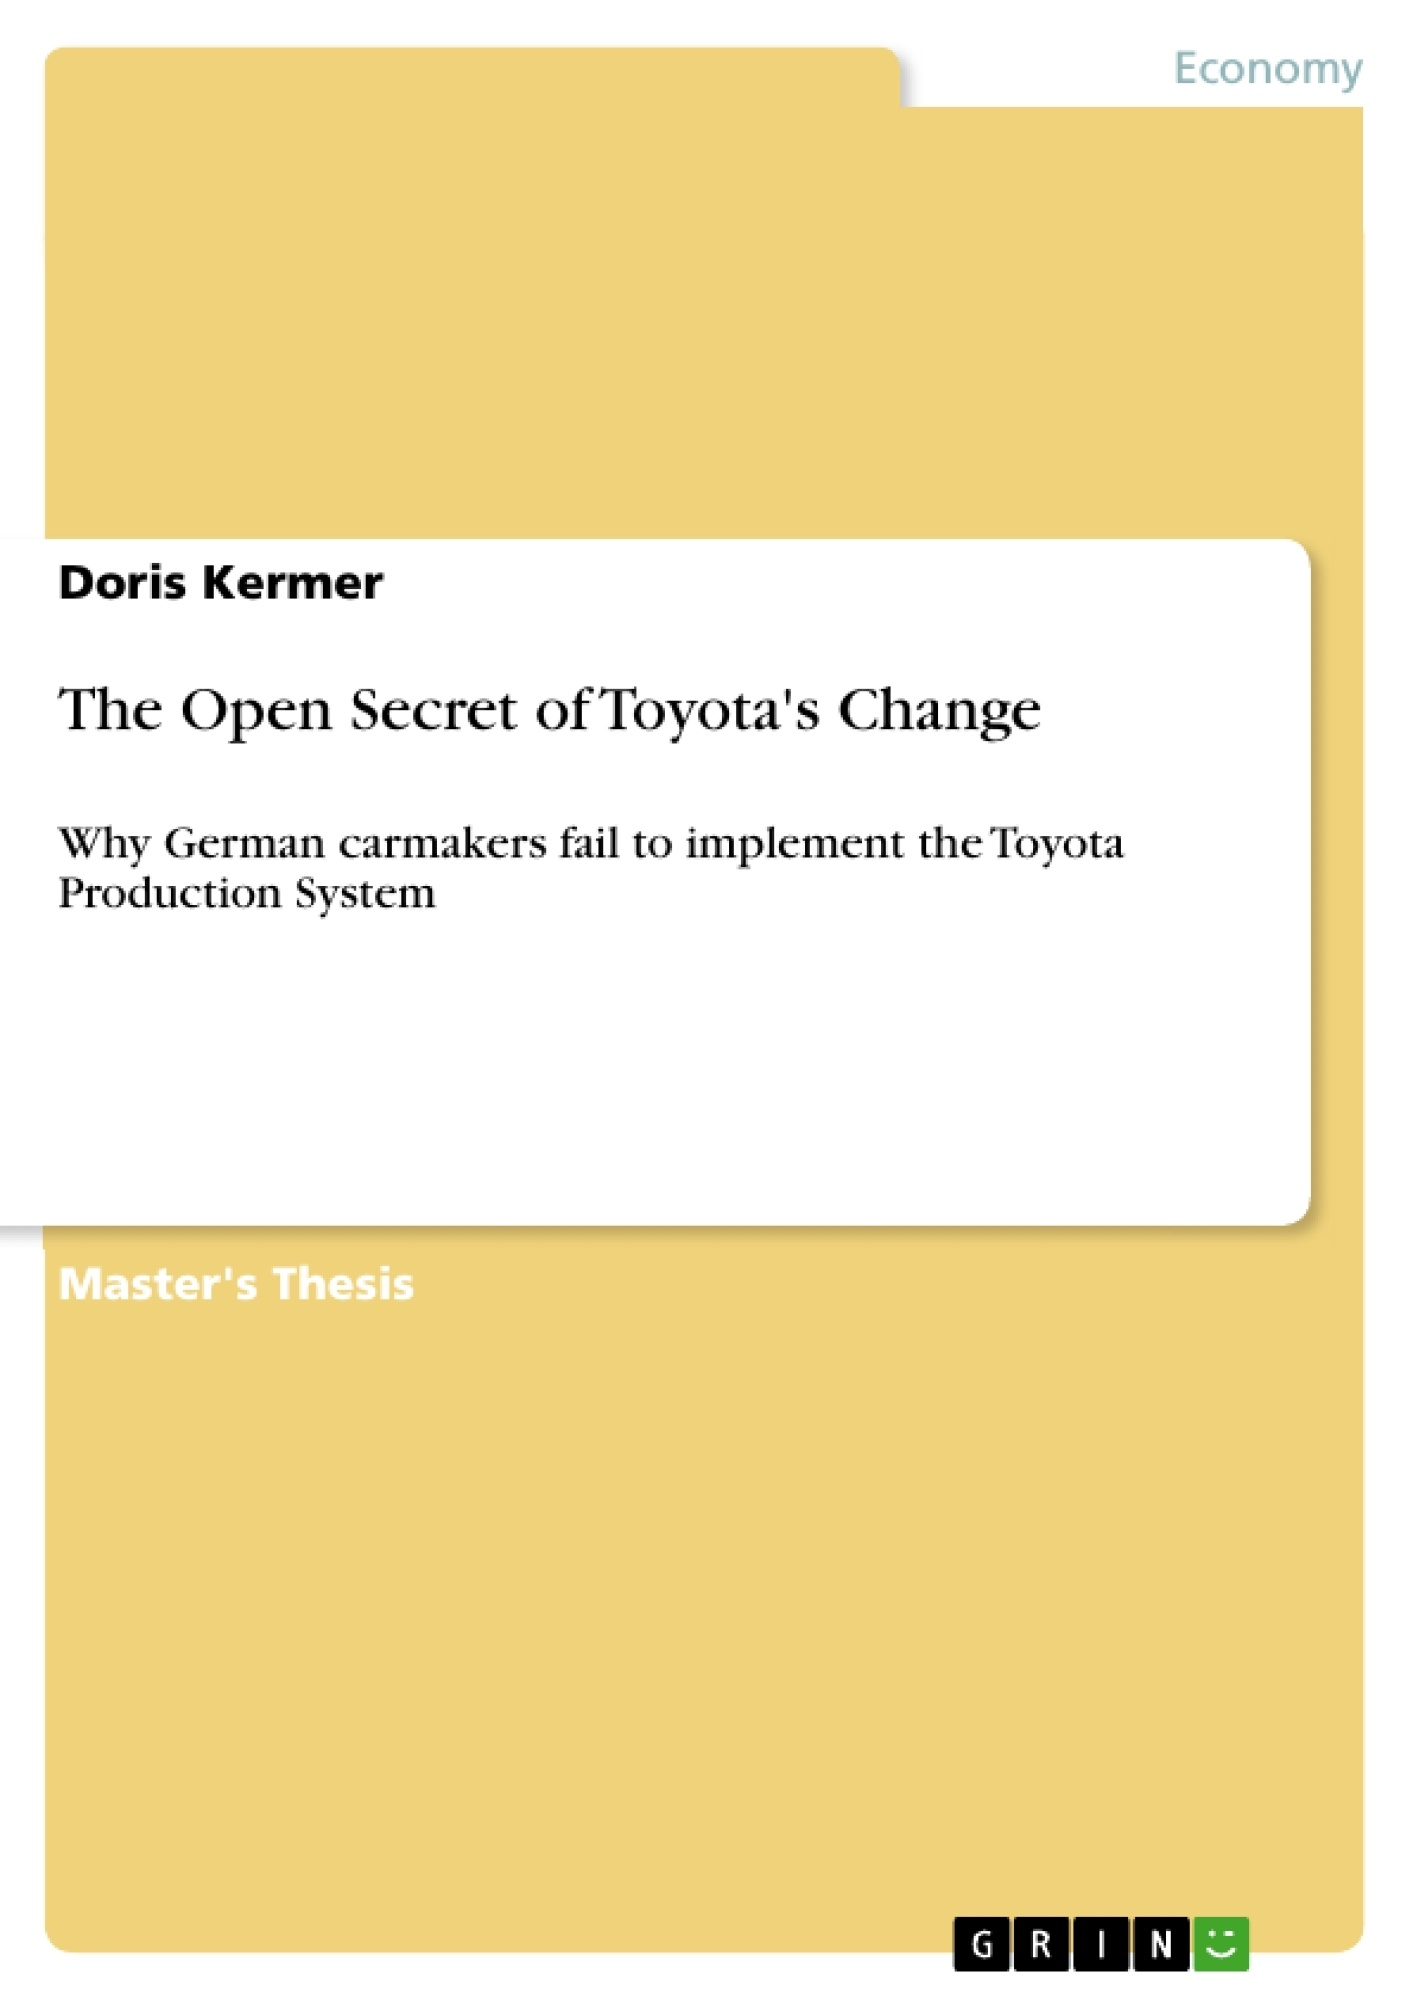 Title: The Open Secret of Toyota's Change